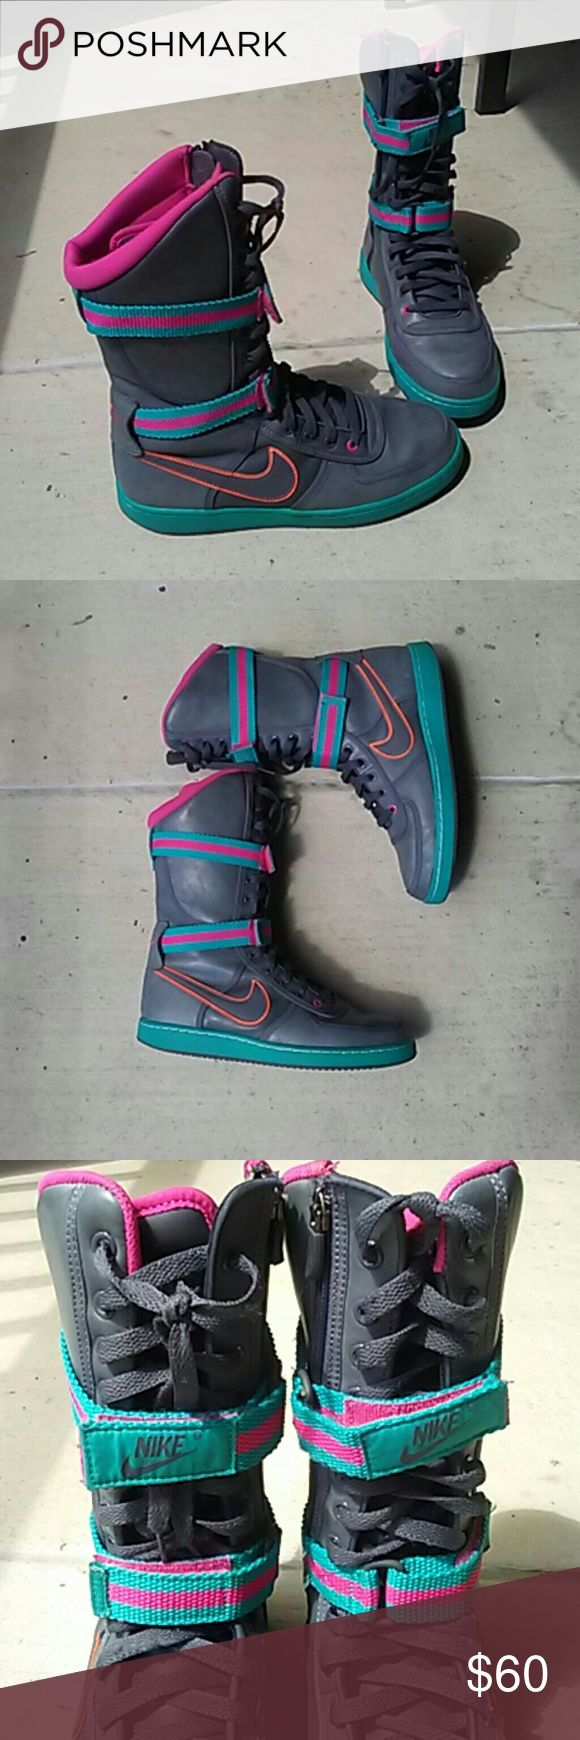 Nike hi top sneaker boot Gray multicolored sneaker with zipper and double velcro closure. The accent colors are hot pink, turquoise, and neon orange. Nike Shoes Athletic Shoes